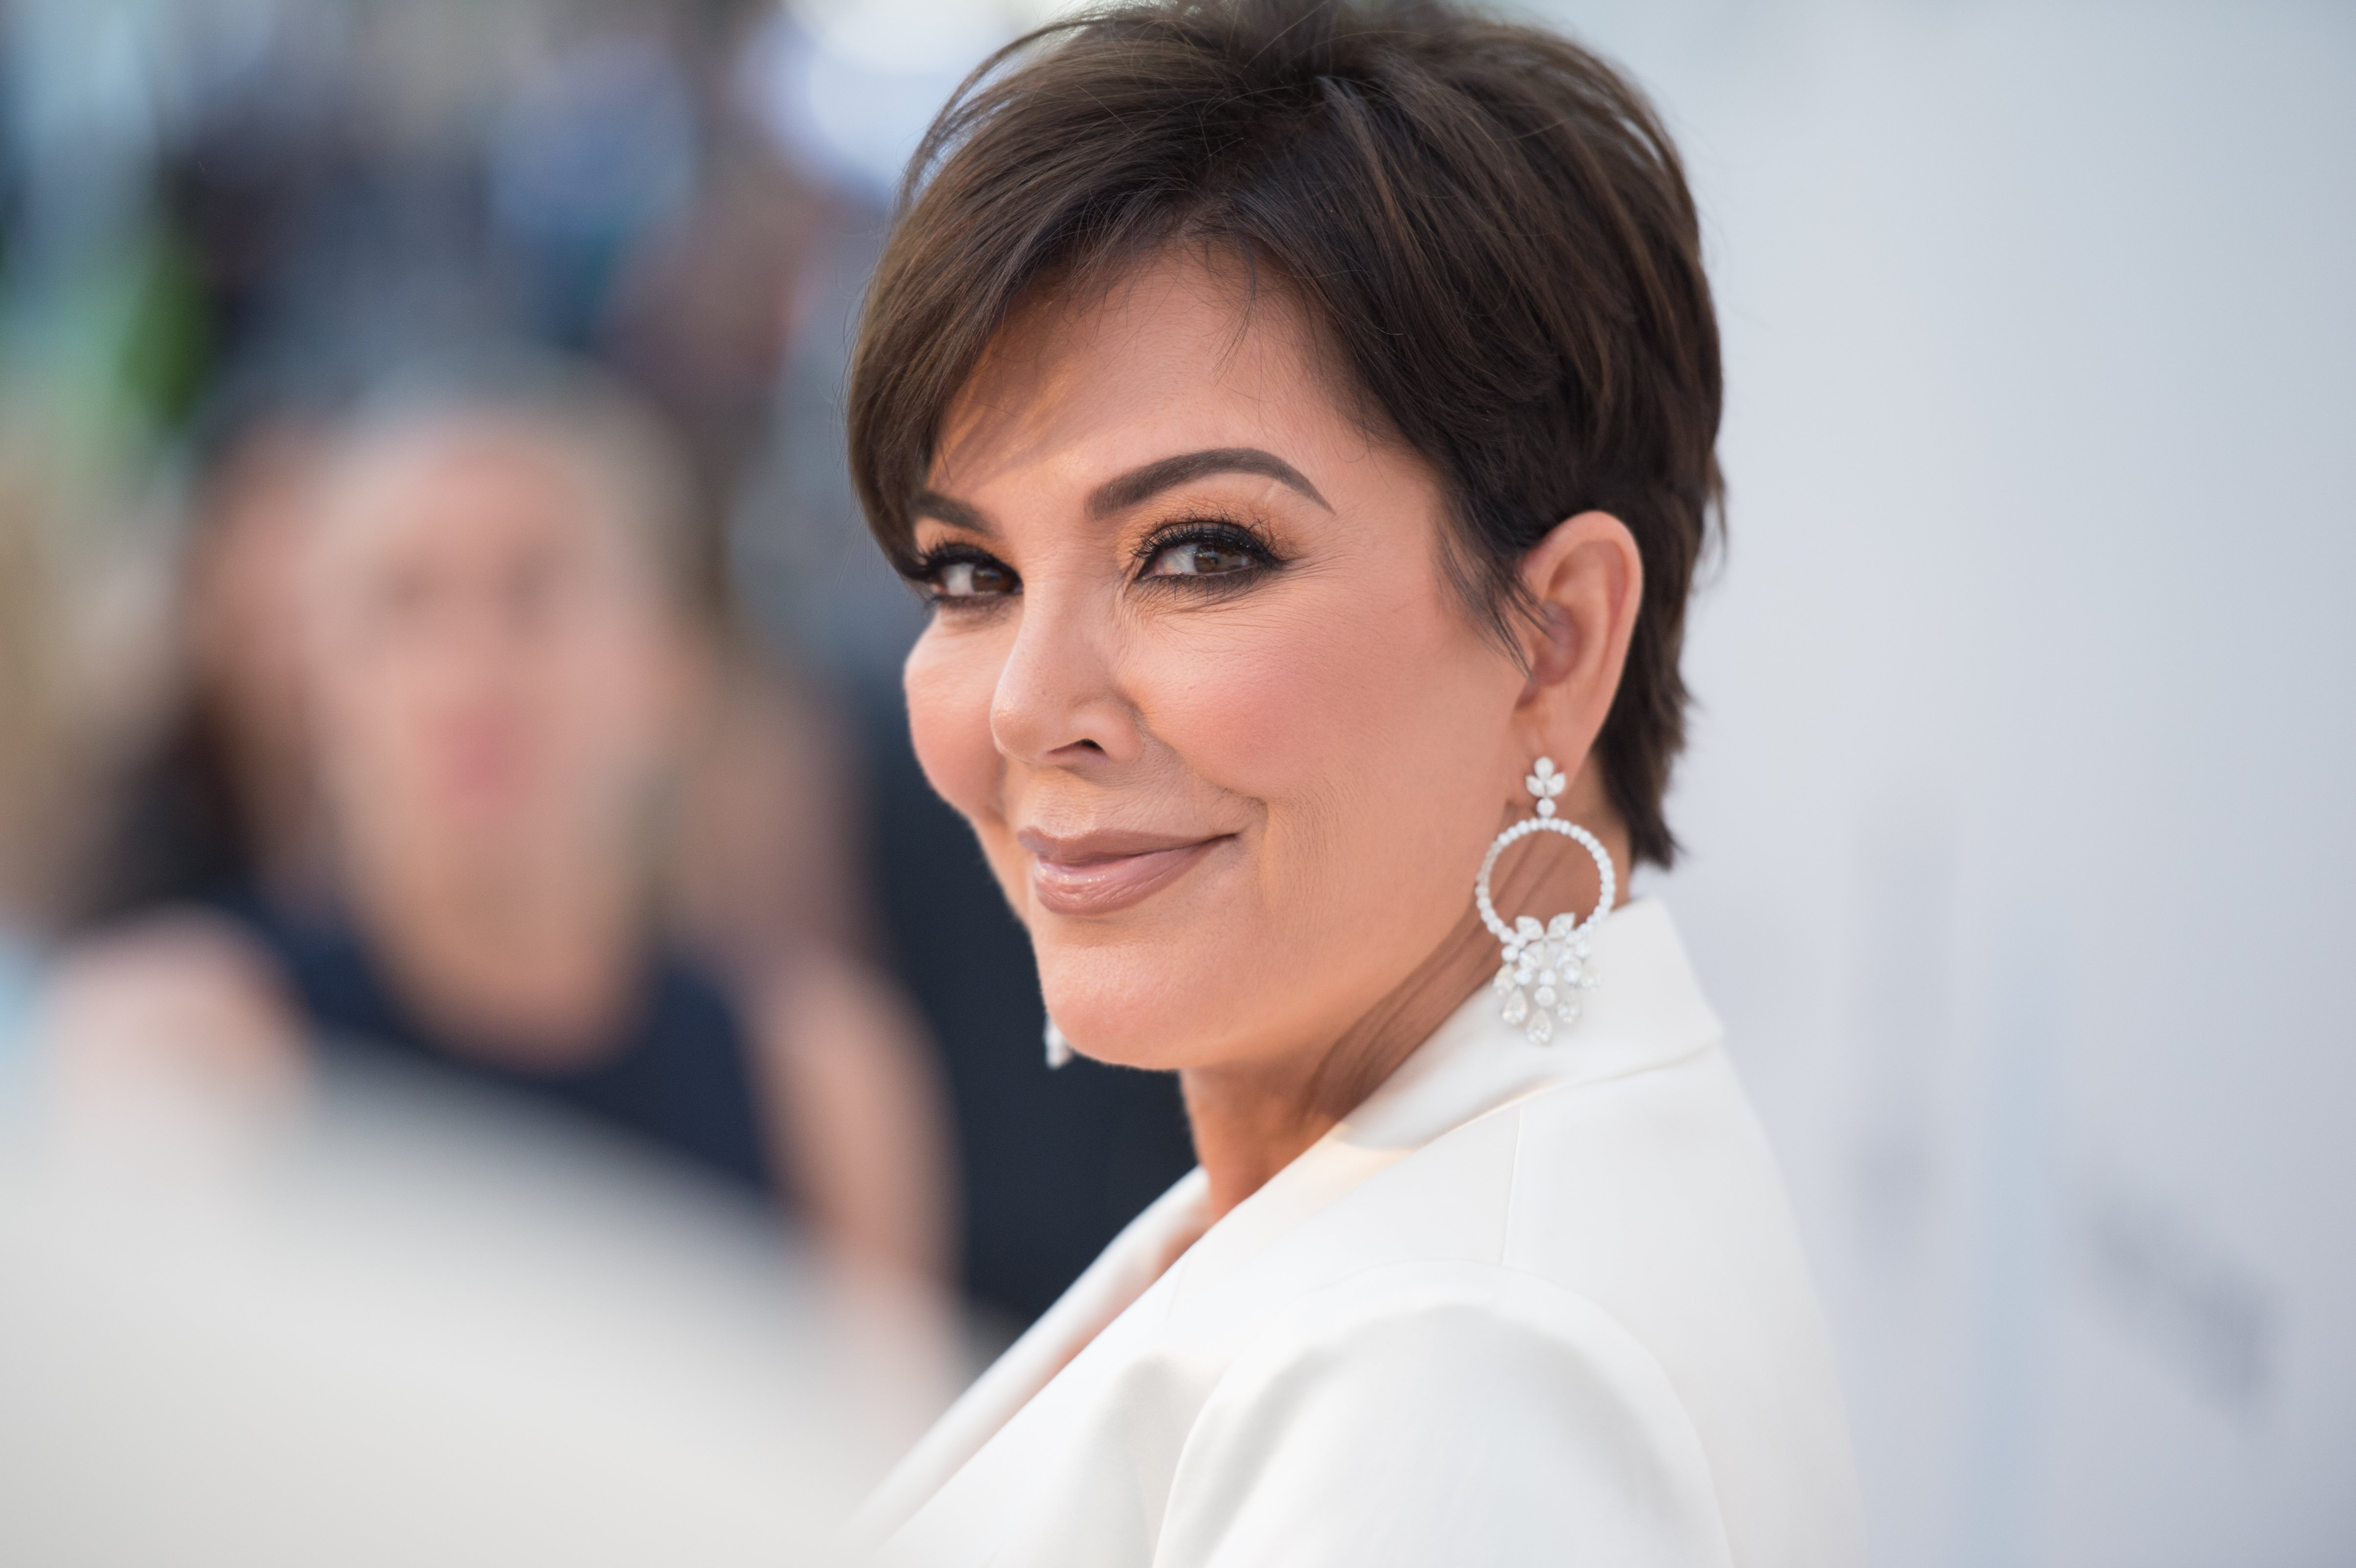 Kris Jenner at the amfAR Cannes Gala in May 2019. | Photo: Getty Images